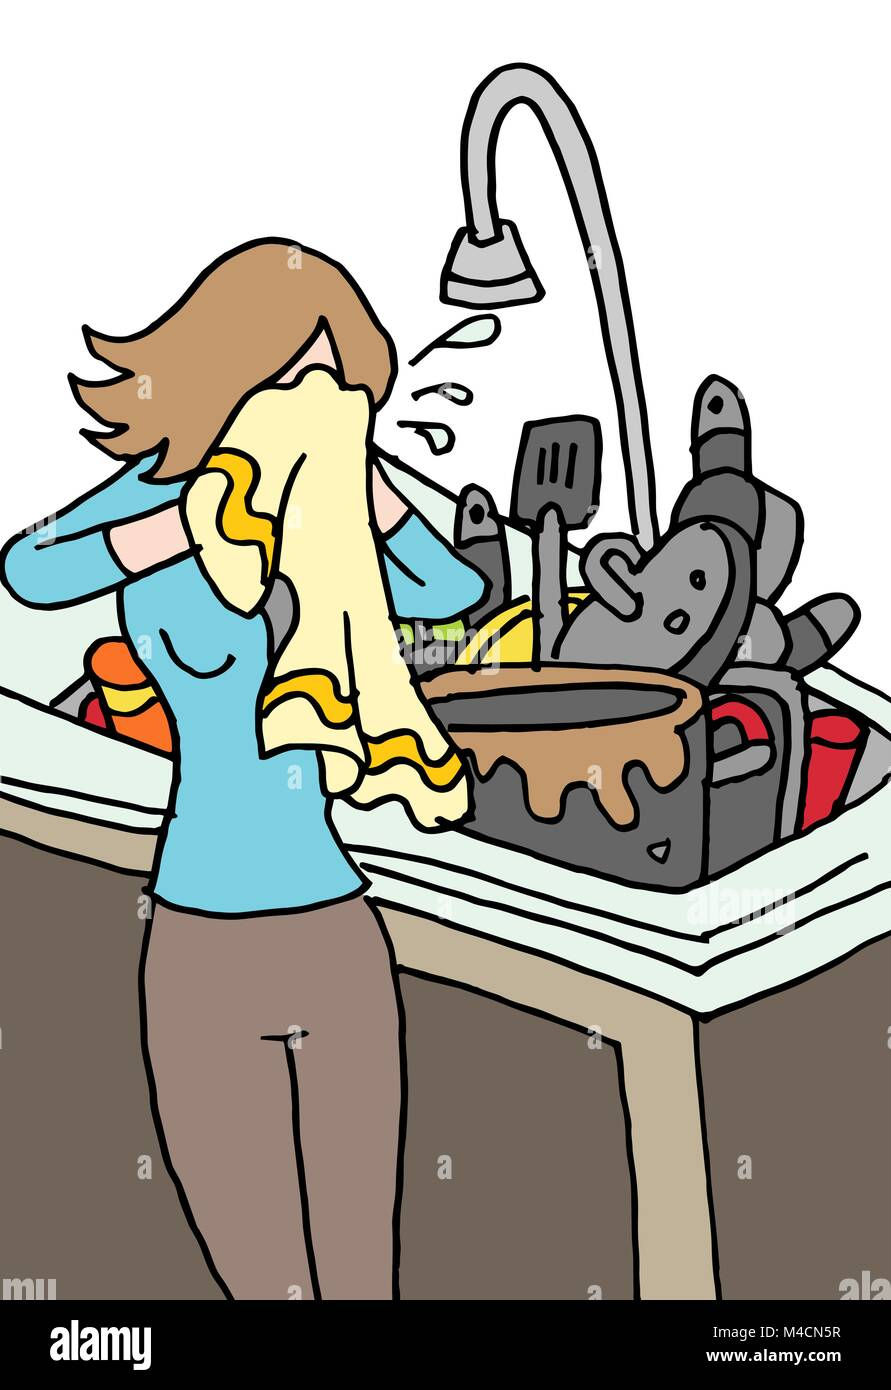 An image of a crying woman doing dishes. - Stock Vector